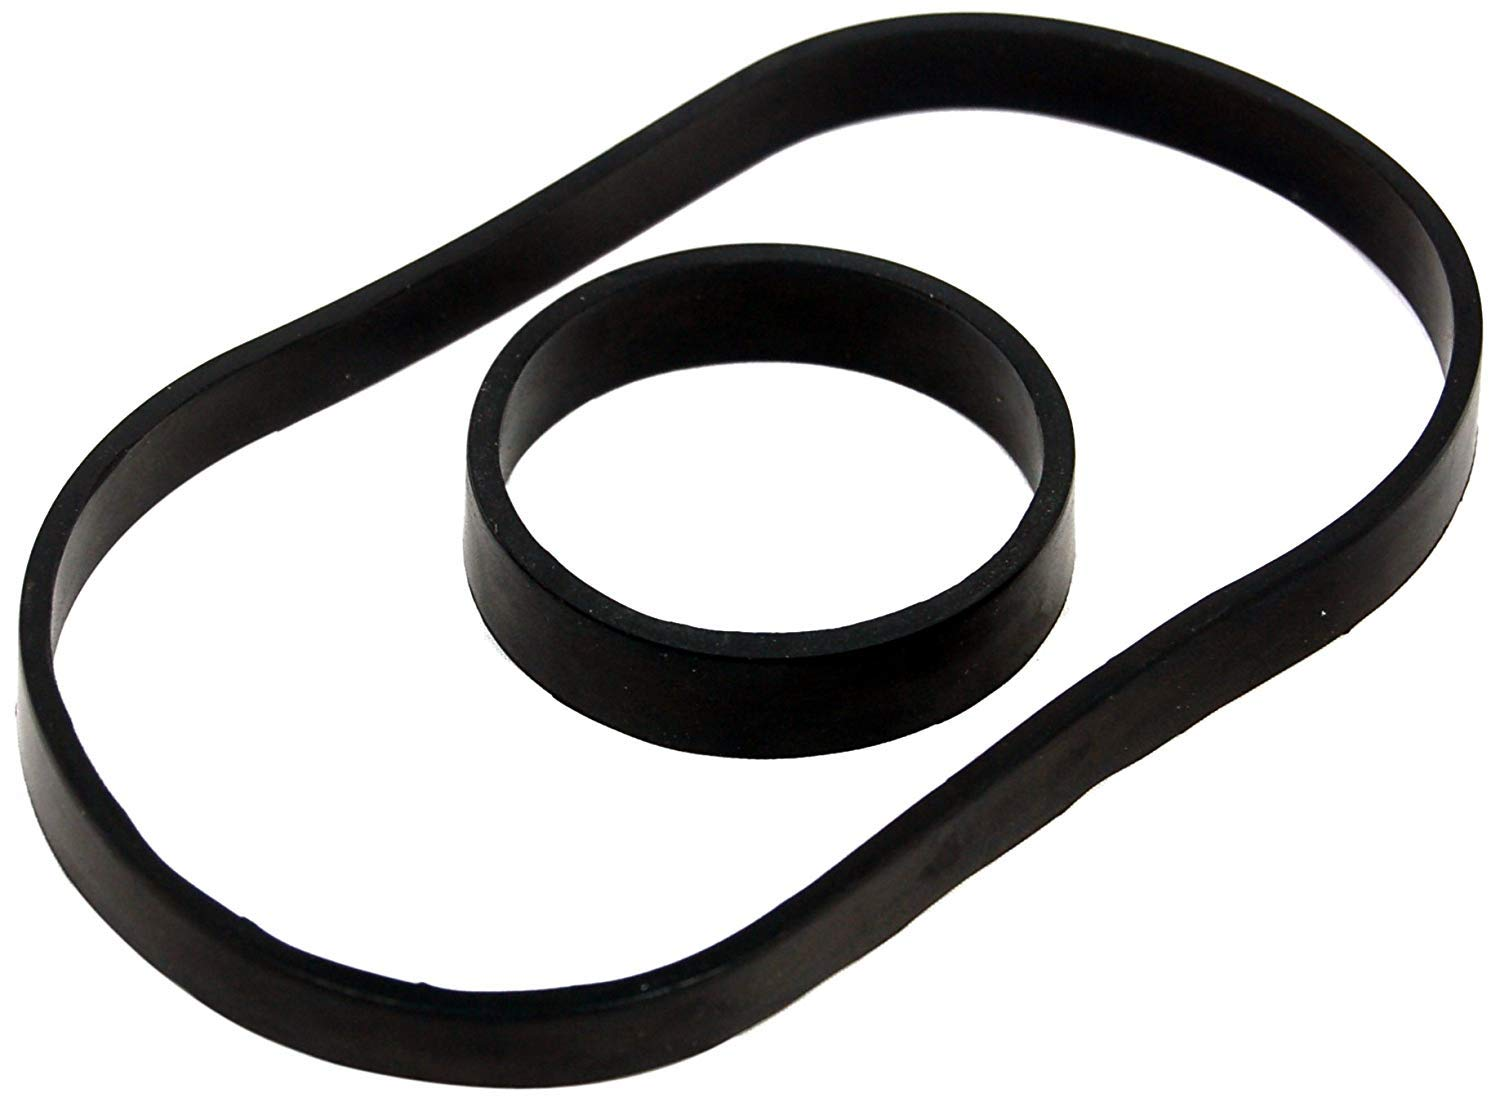 Quality PANASONIC MCE3002 MCE3011 Vacuum Hoover Cleaner BELTS x 2